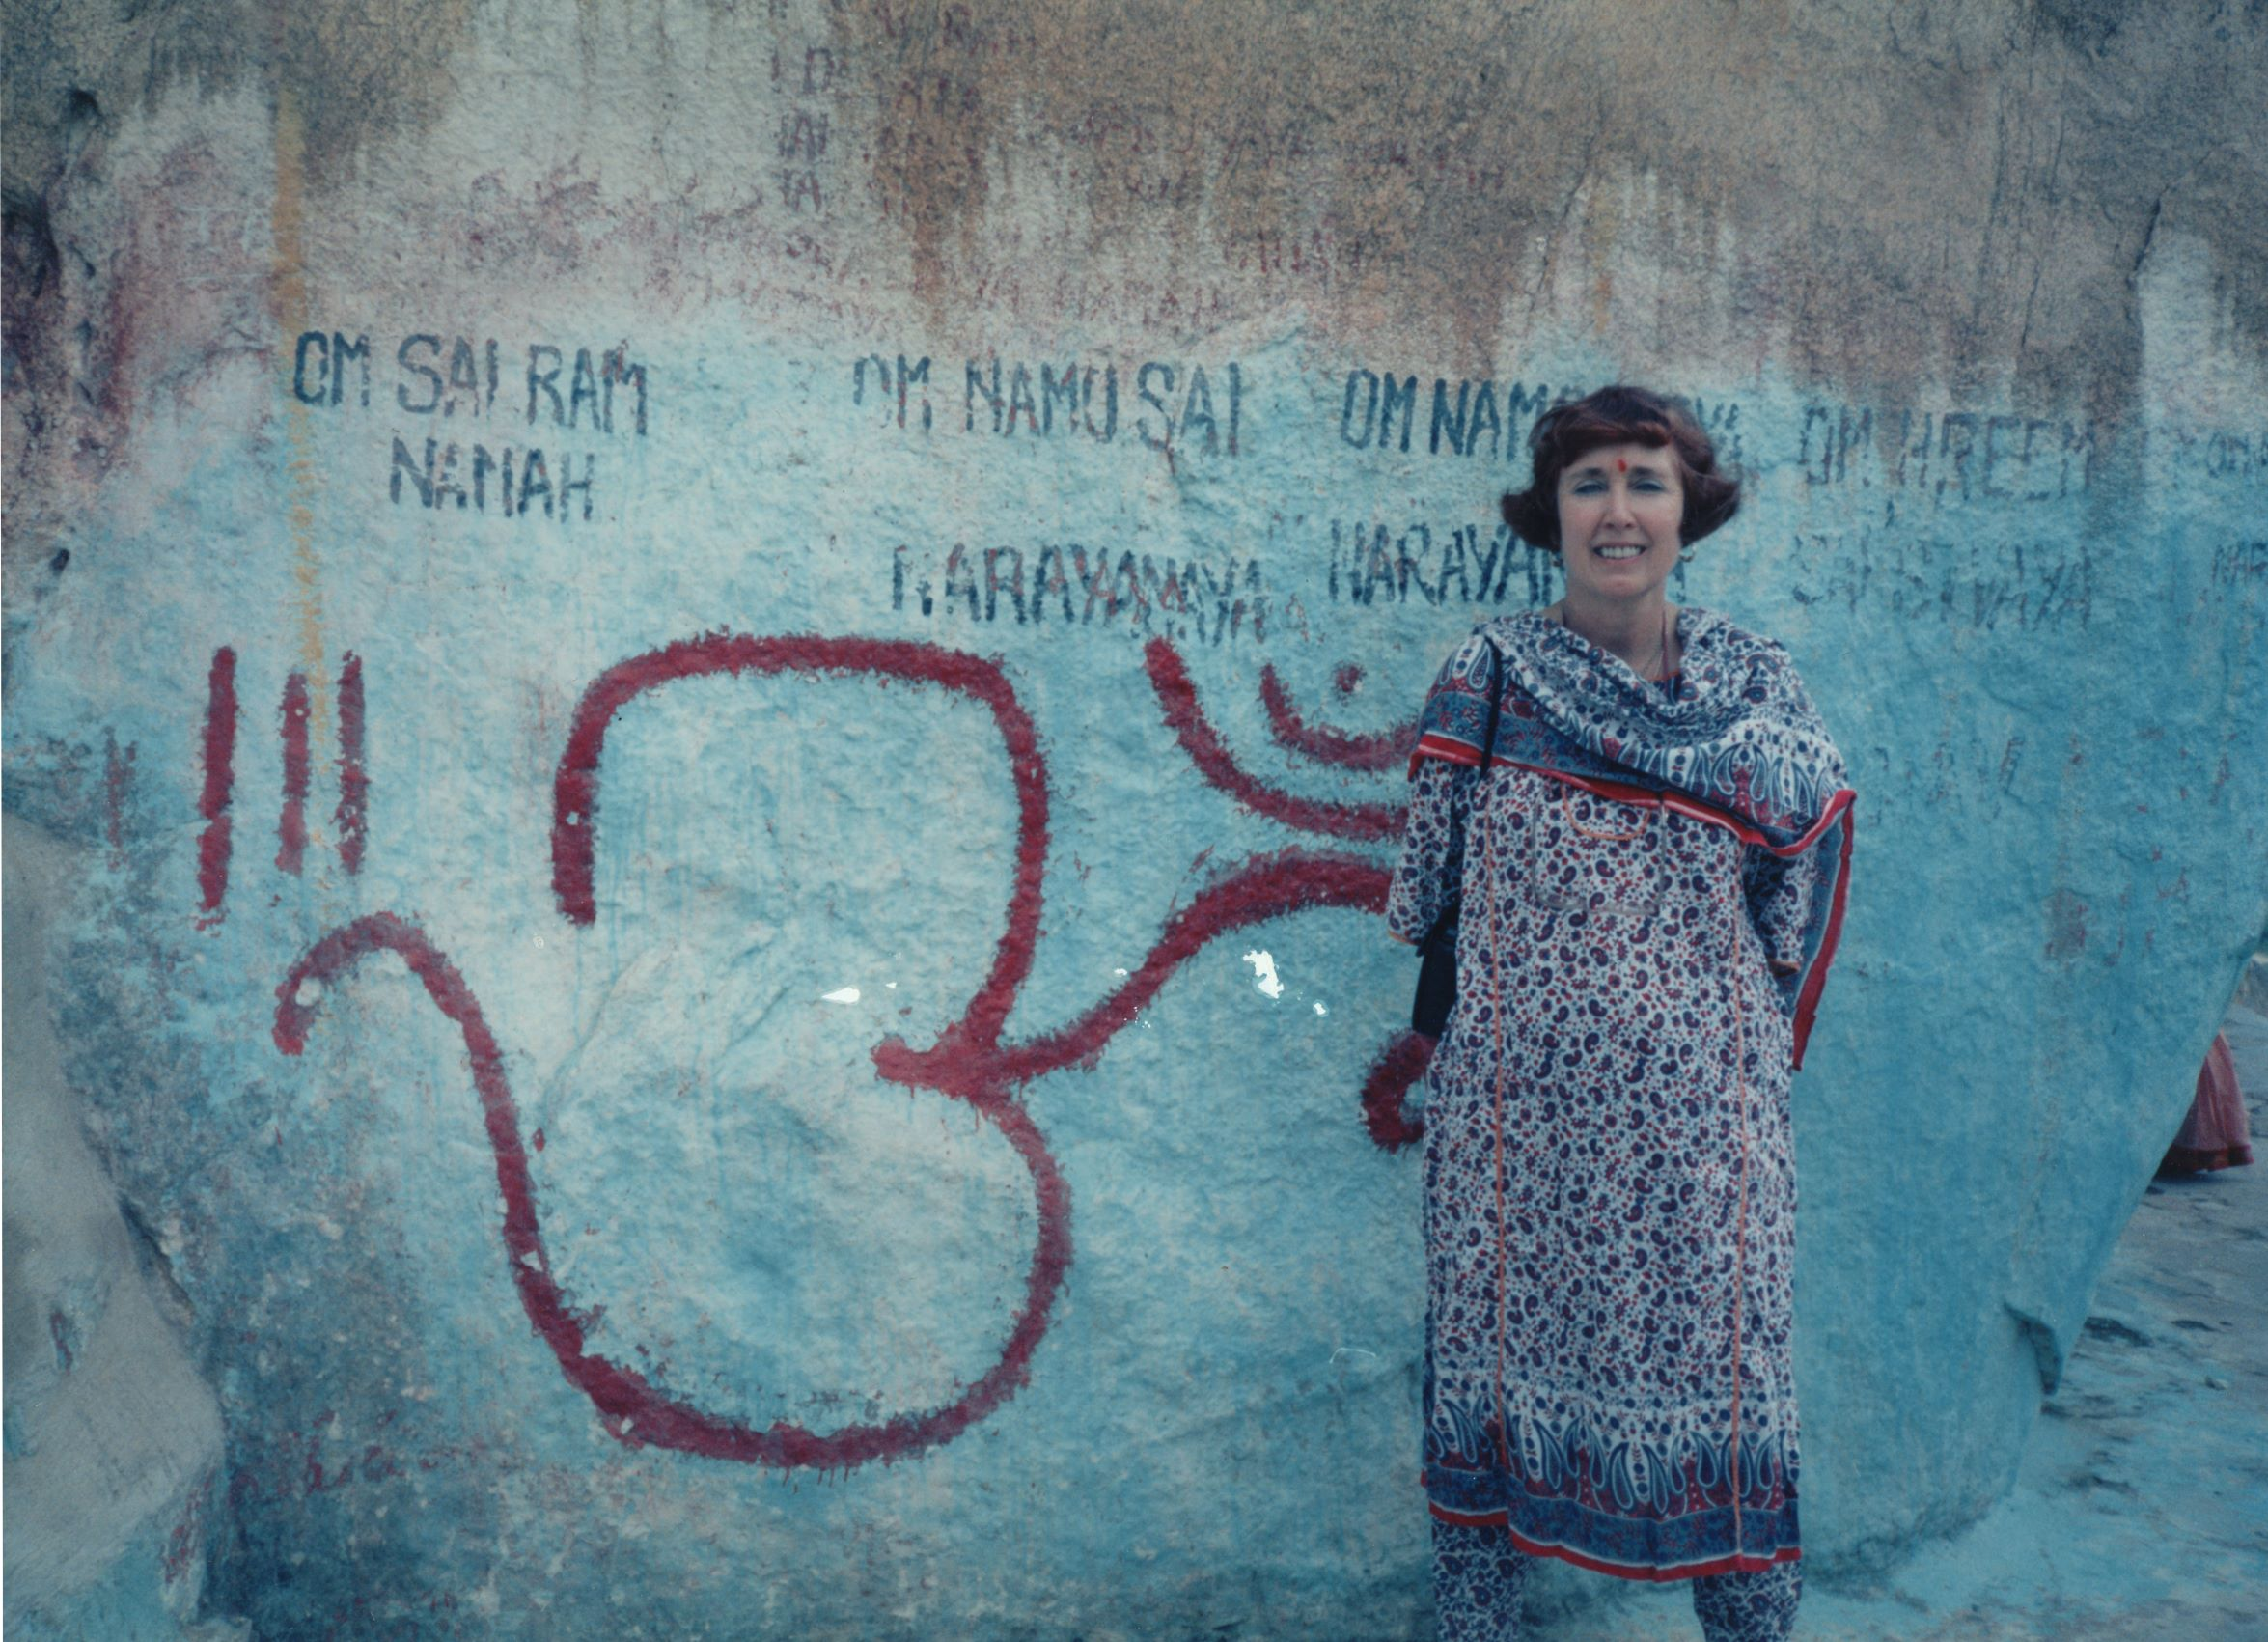 above: Joan Brown, Puttaparthi, India, October 1990. © The Joan Brown Estate; collection of Michael Hebel and Noel Neri, San Francisco.